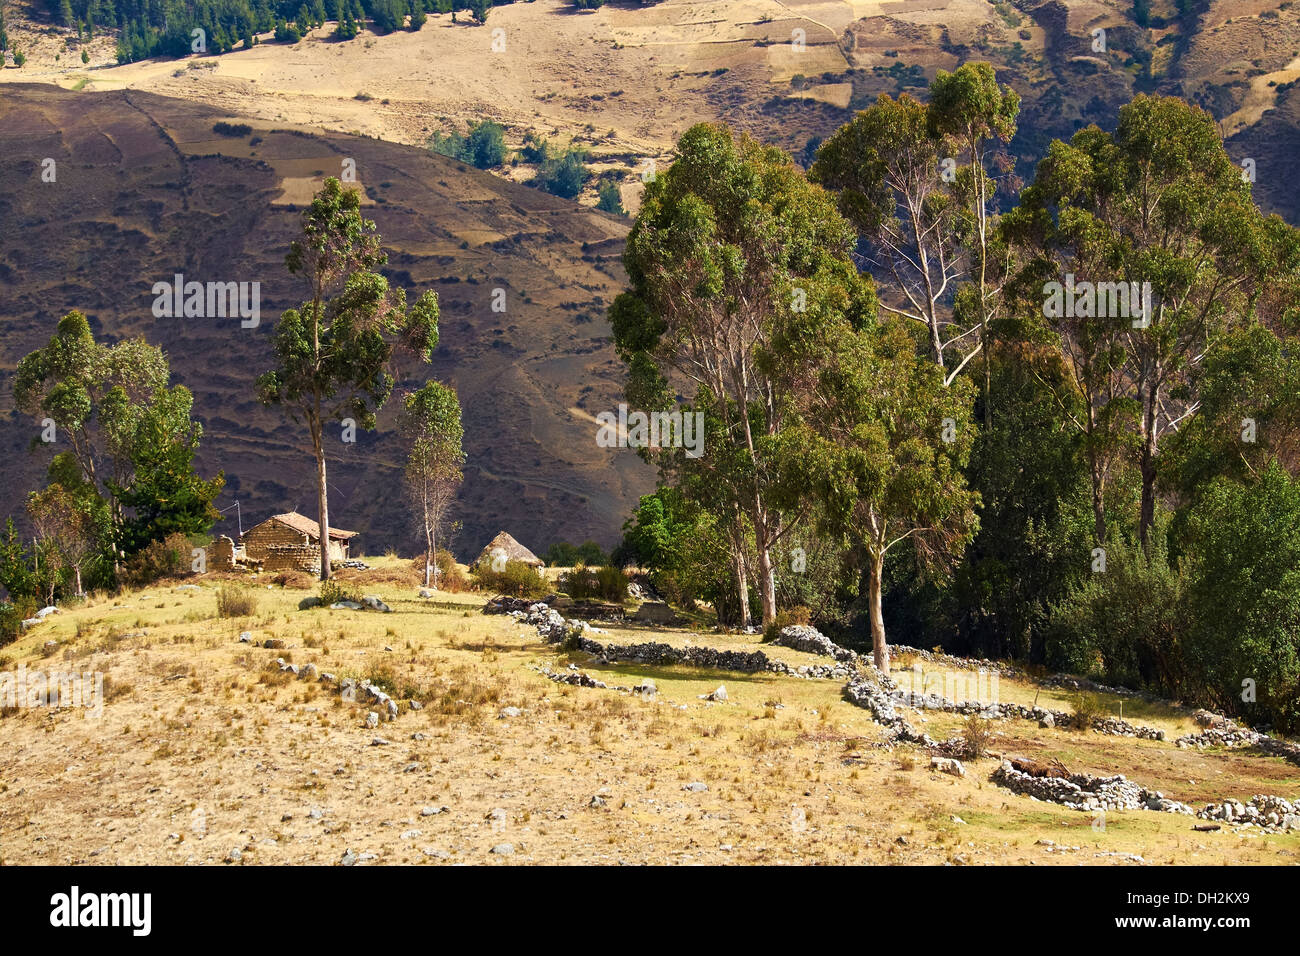 Traditional adobe settlement in the Huascaran National Park in the Andes, South America. - Stock Image